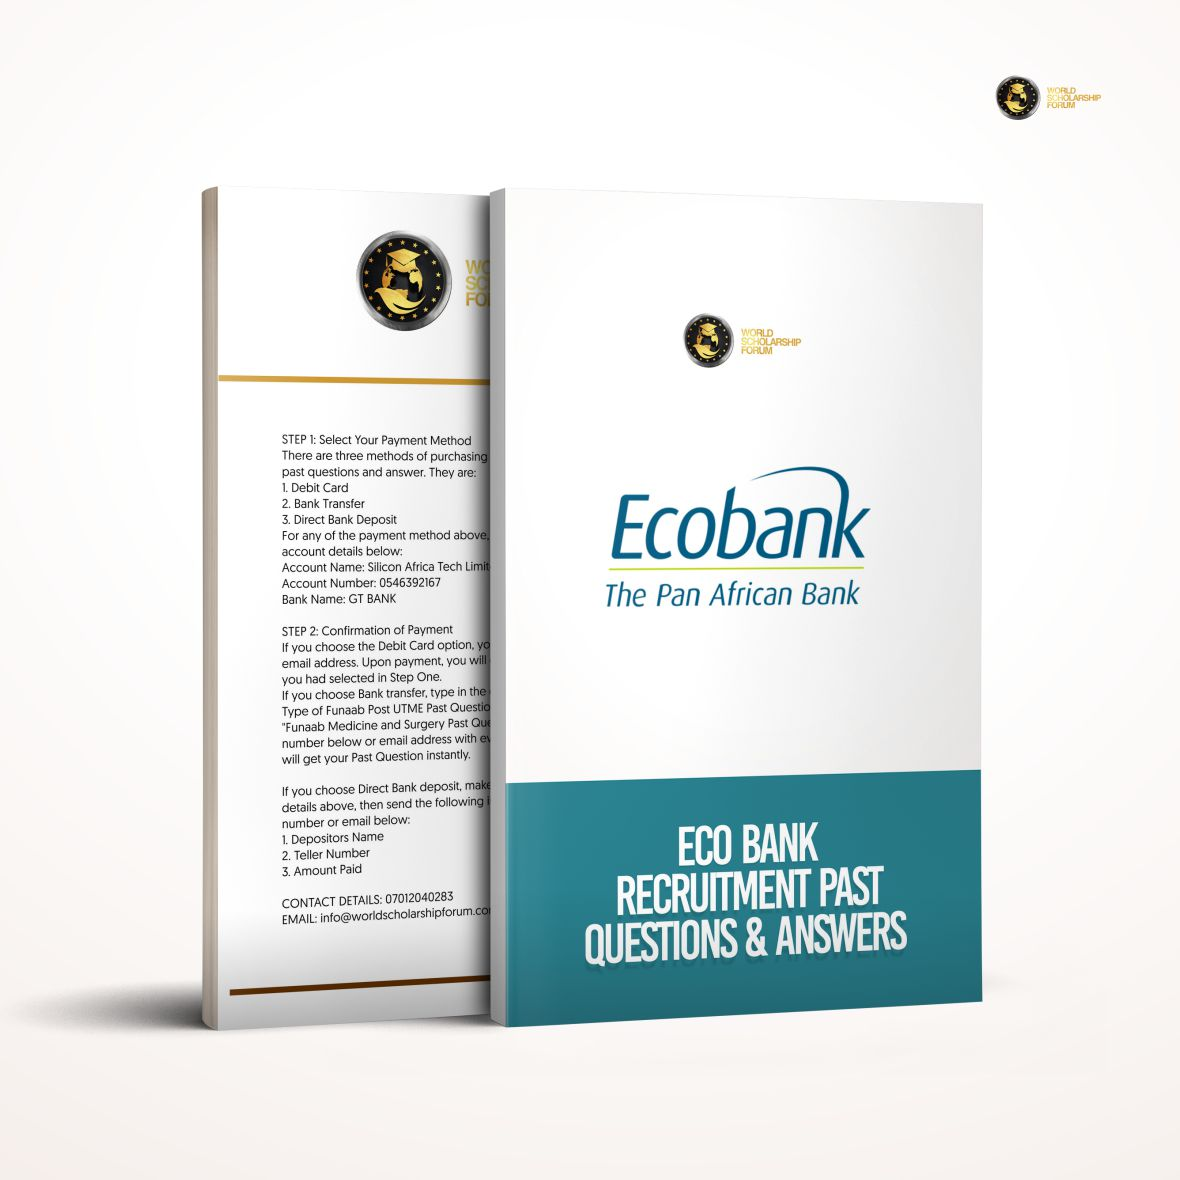 ecobank-recruitment-past-questions-answers